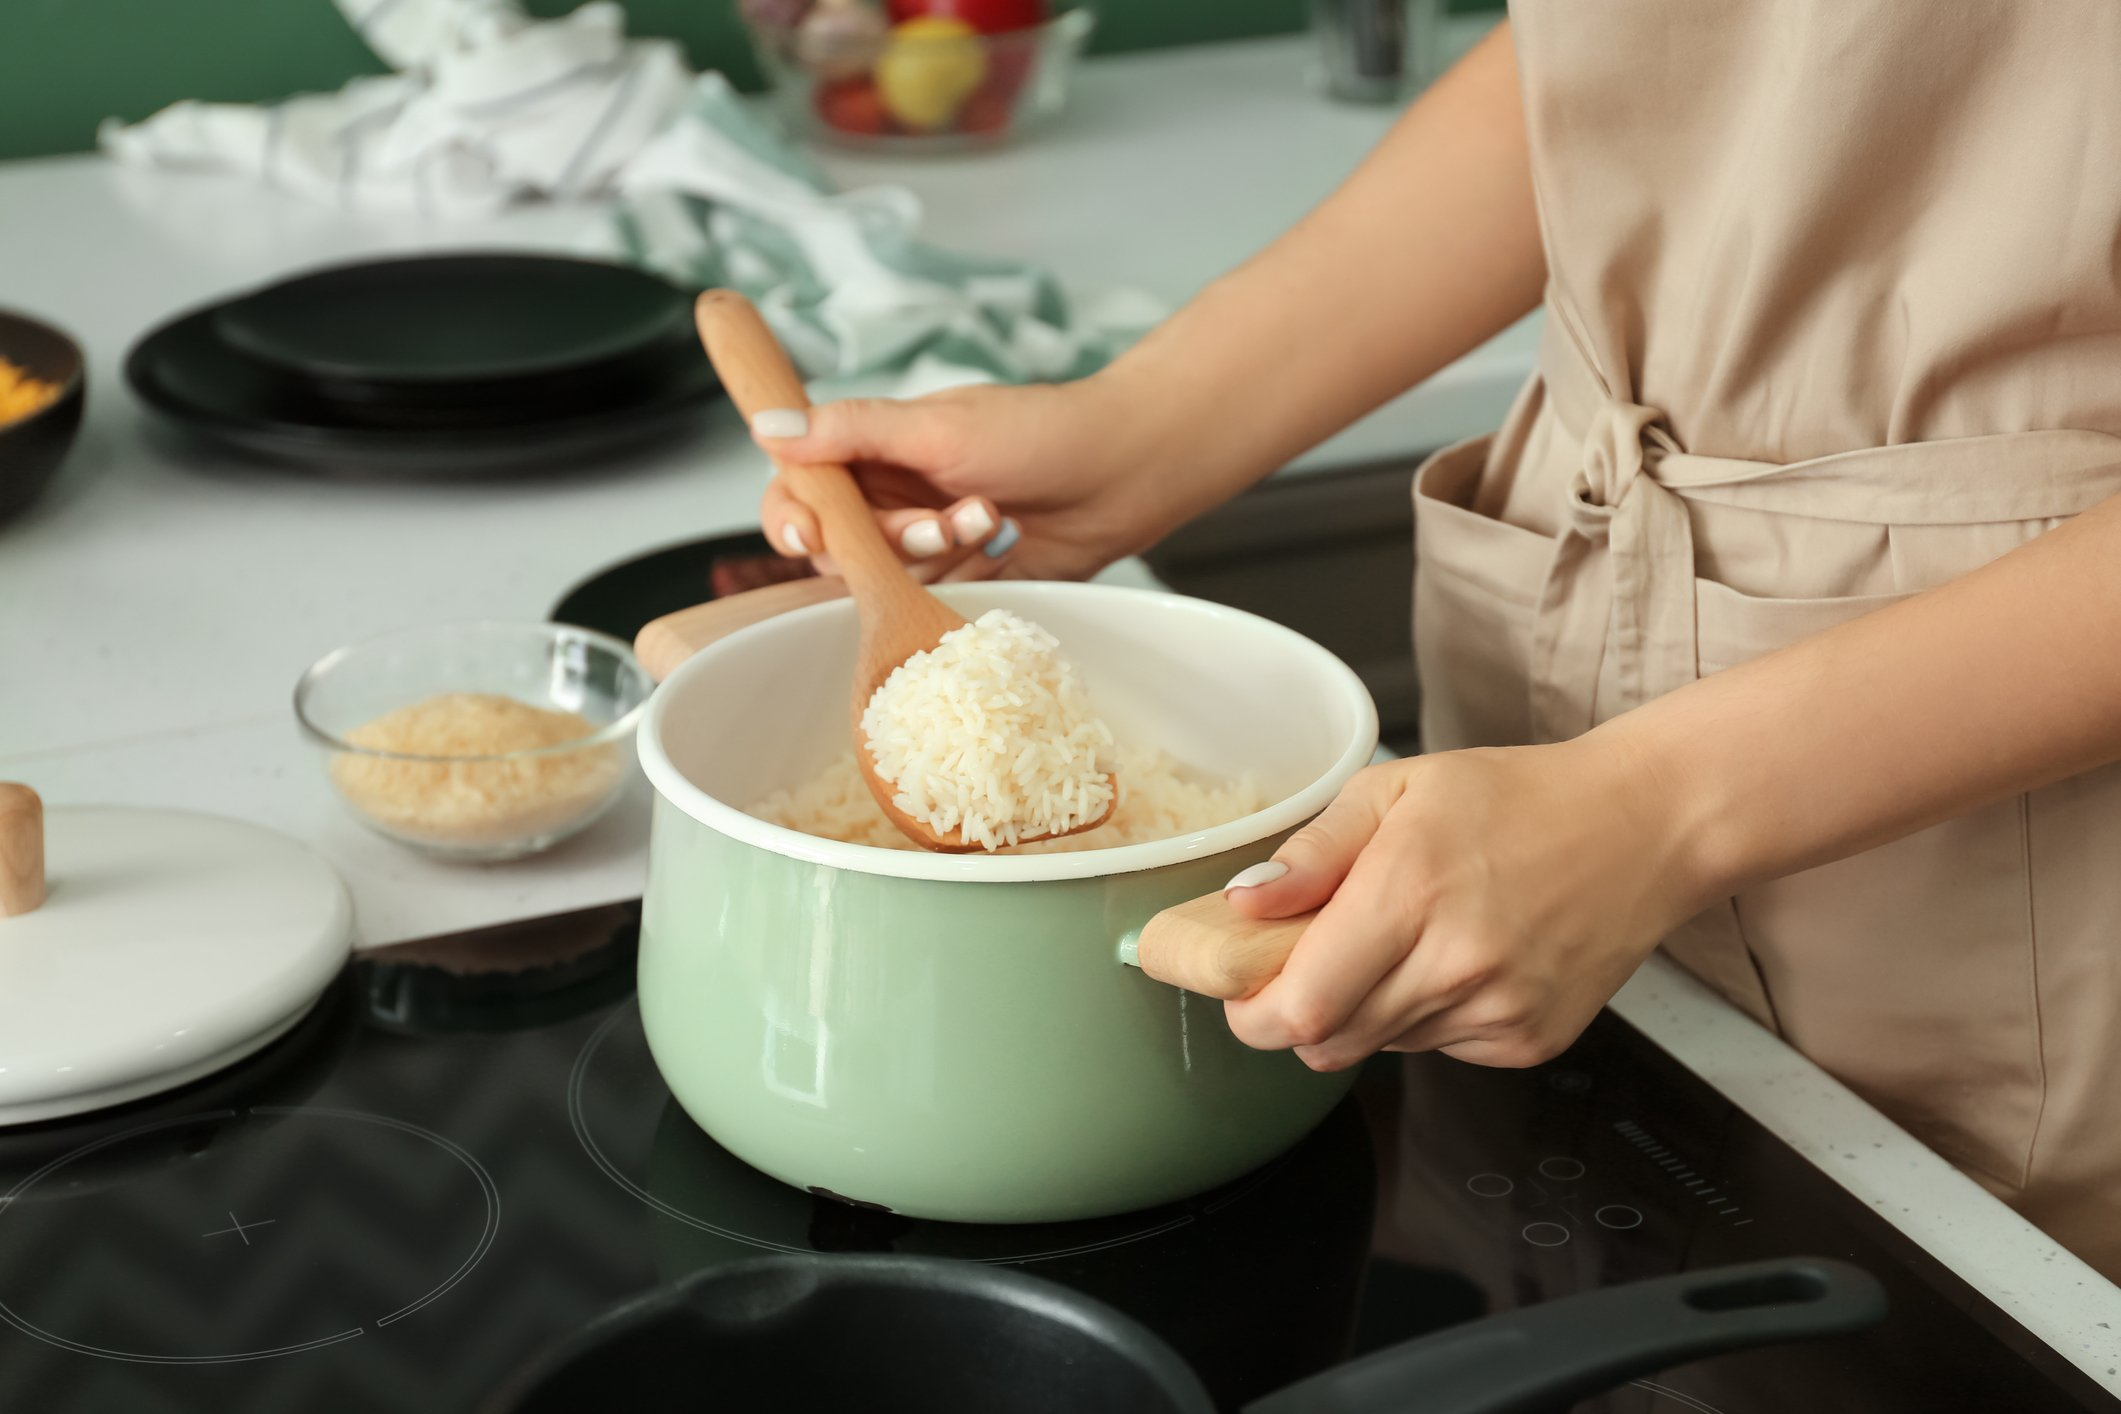 The key to cooking rice is knowing what kind to use and not stir too often. (iStock Photo)